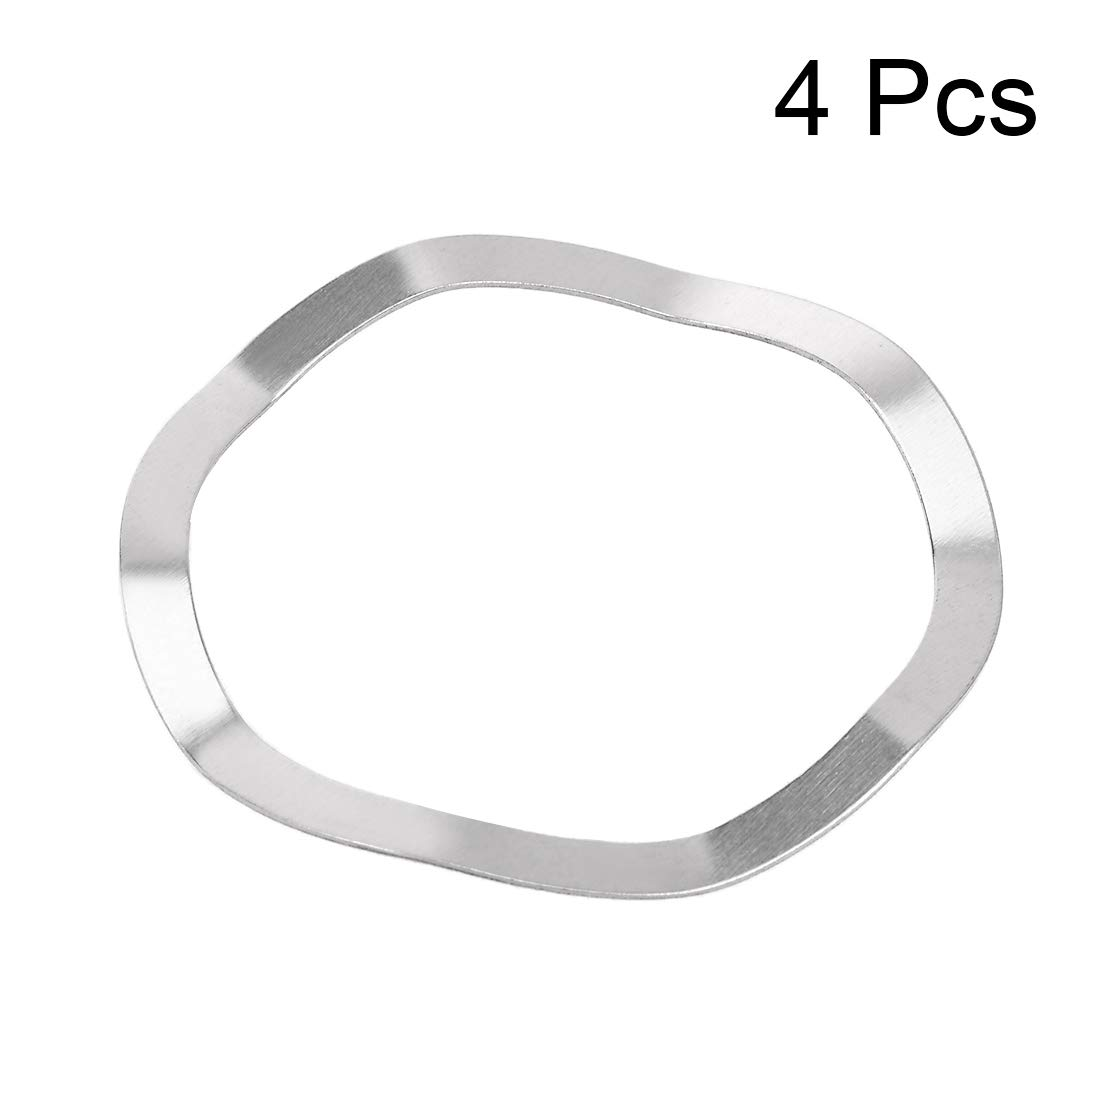 uxcell 4 Pcs 31mm x 39mm x 0.4mm 304 Stainless Steel Wave Spring Washer for Screw Bolt